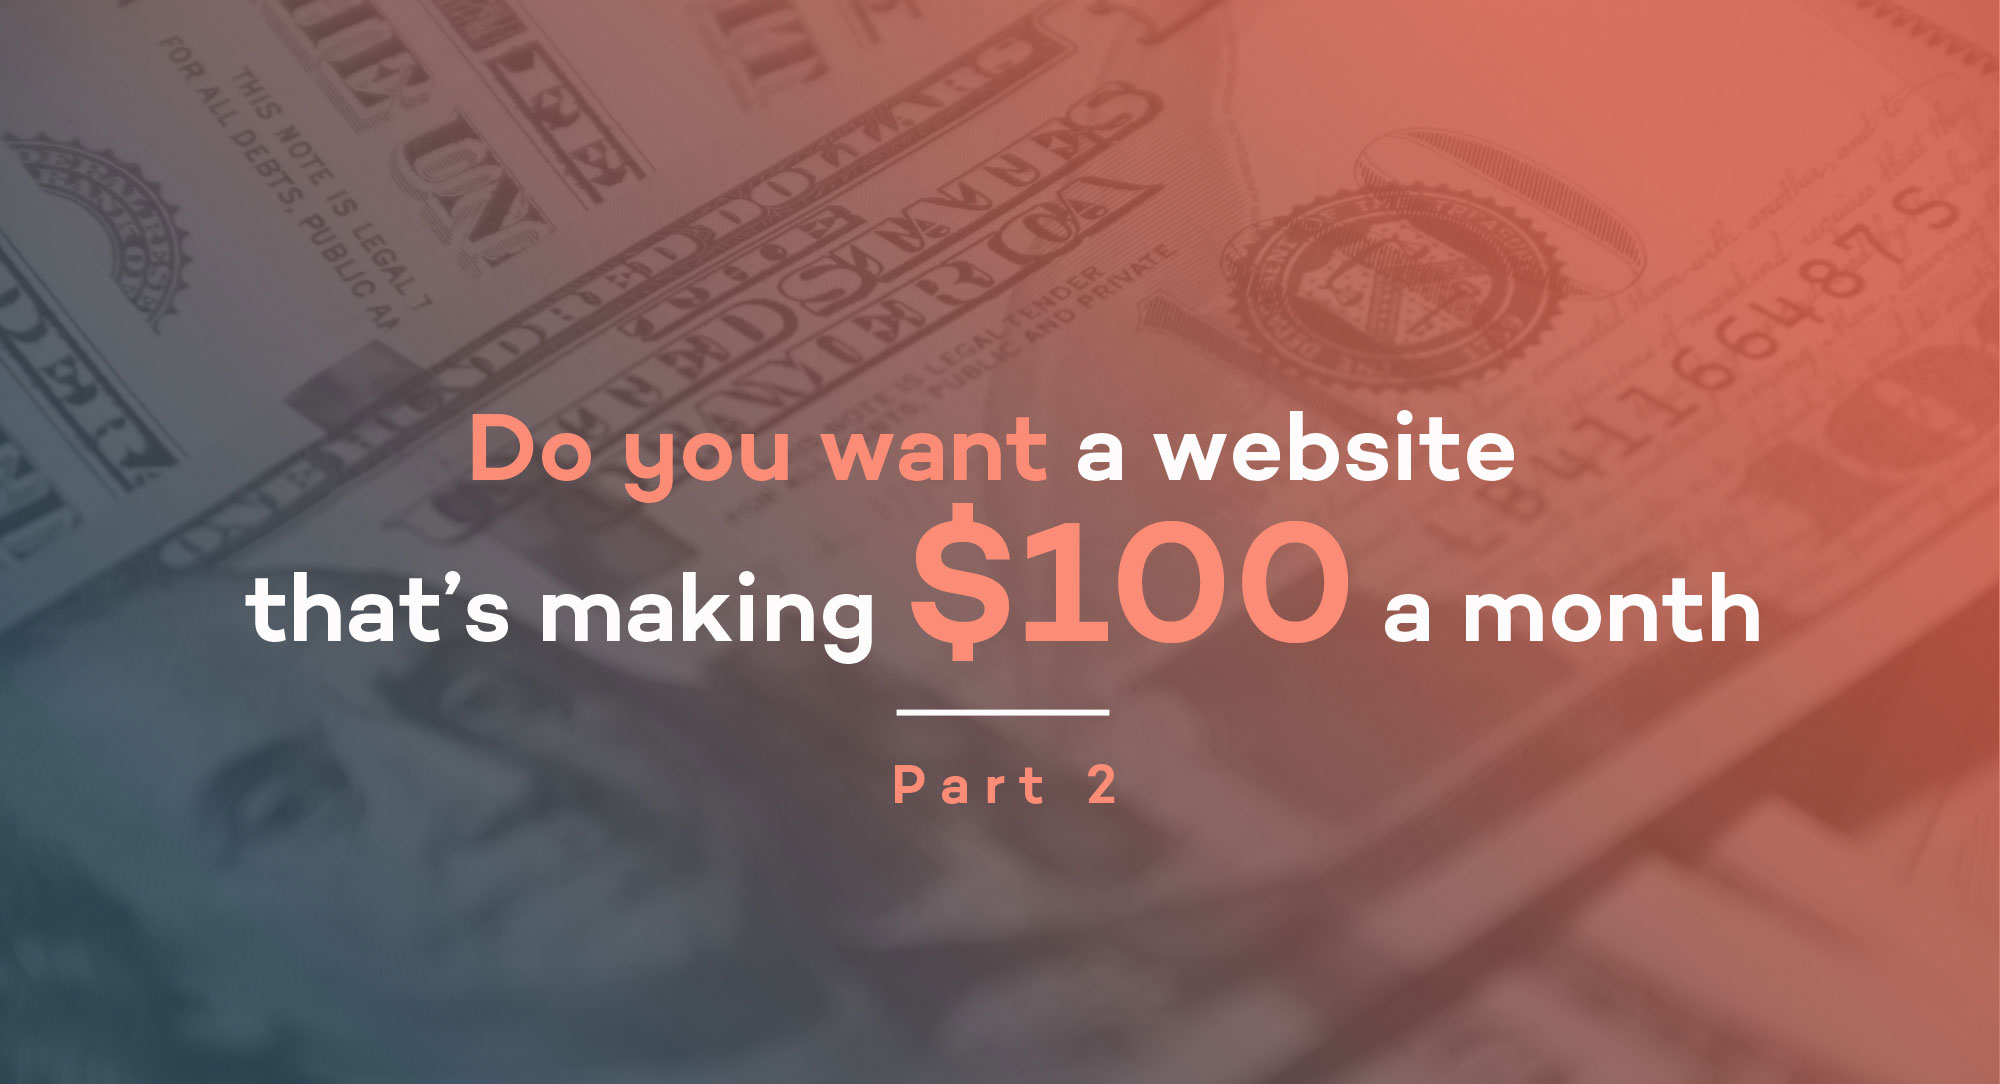 Do-you-want-a-website-that's-making-$100-a-month-part2